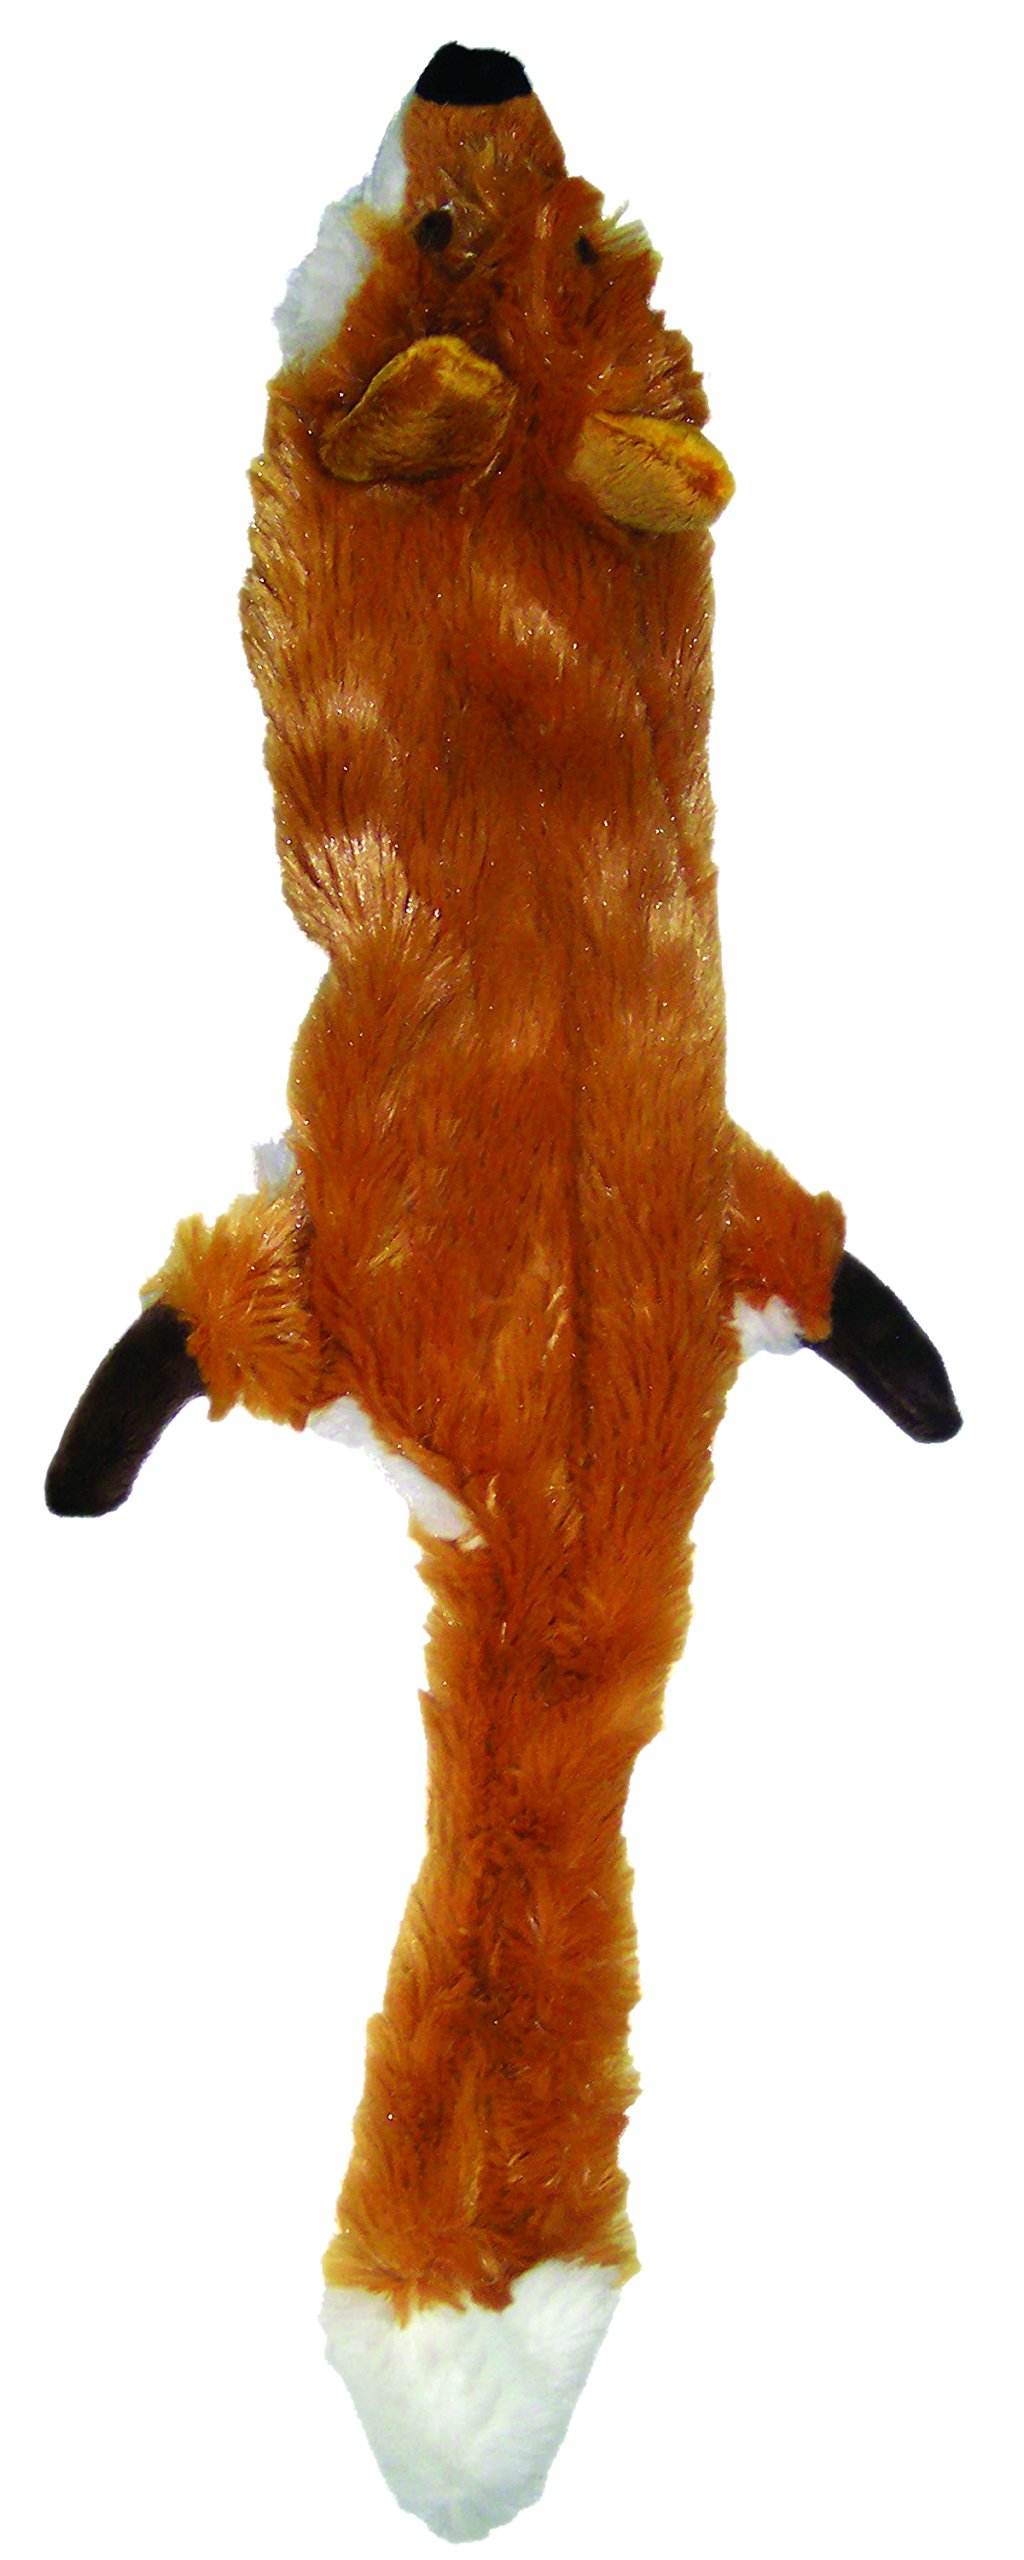 SPOT-Mini-Skinneeez-Stuffless-Dog-Toy-with-Squeaker-for-All-Dogs-Tug-of-War-Toy-for-Small-and-Large-Breeds-14-Fox-Design-by-Ethical-Pet